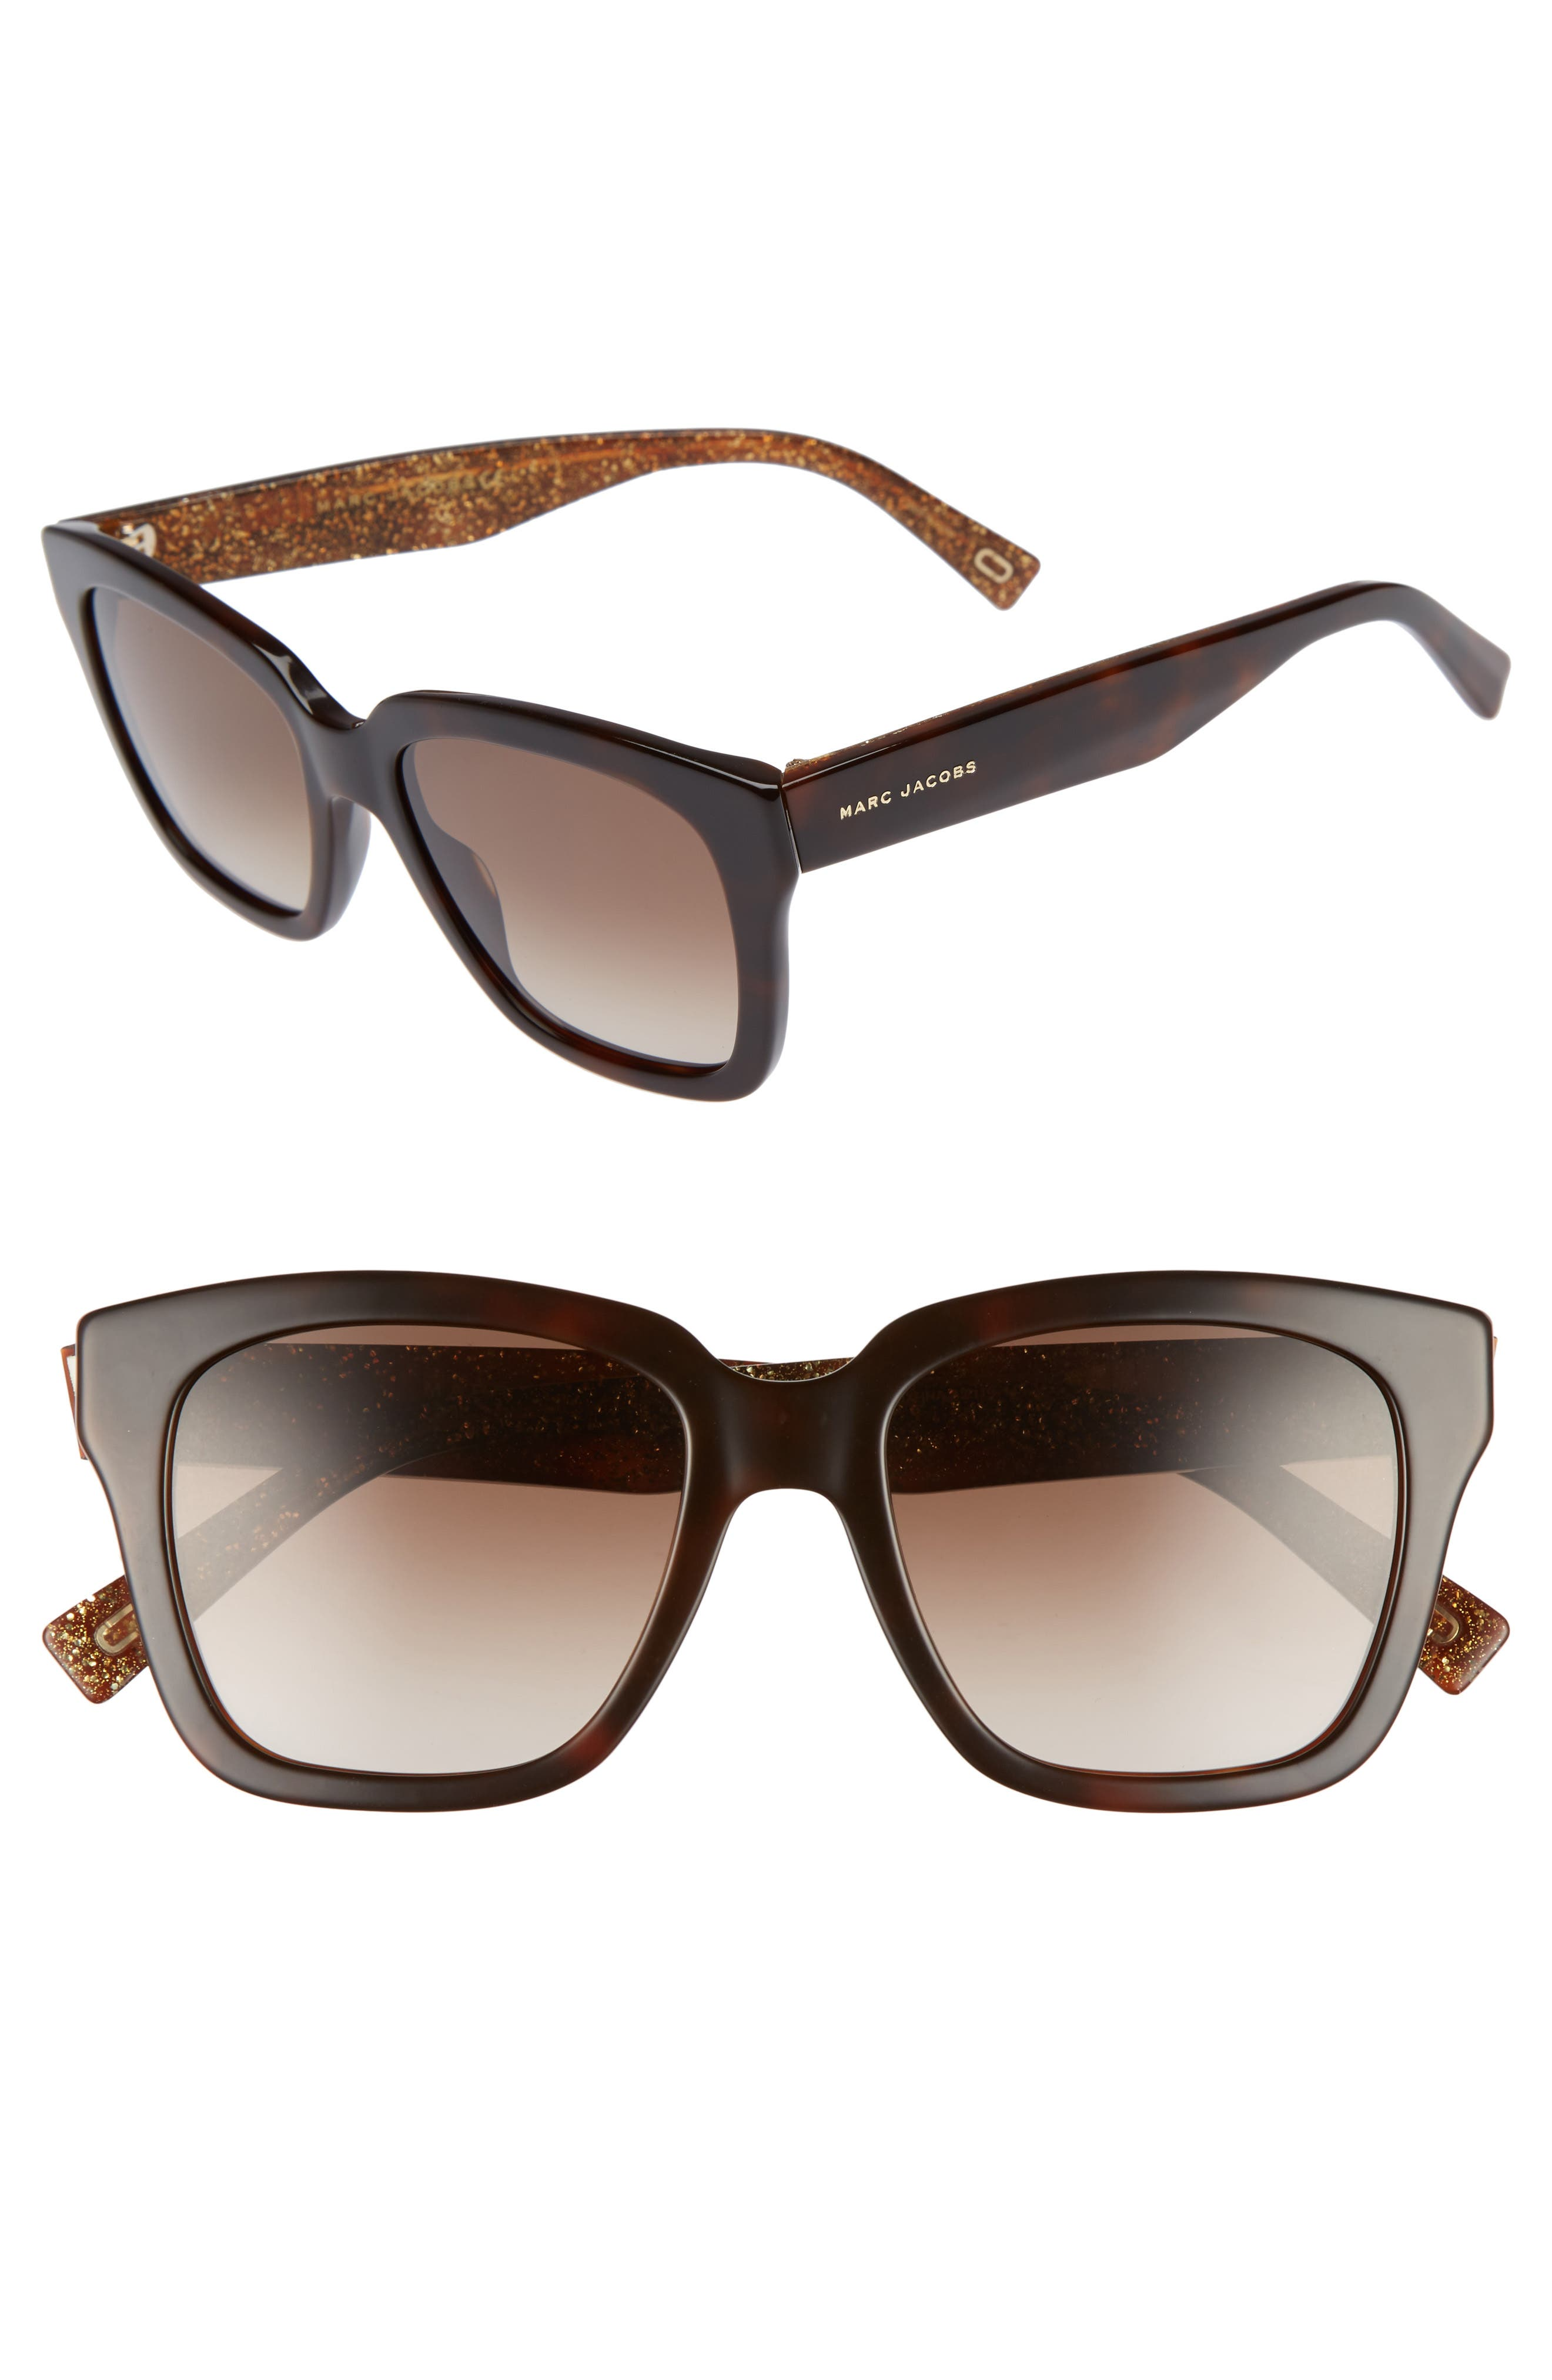 52mm Square Sunglasses, Main, color, HAVANNA BROWN/ GOLD